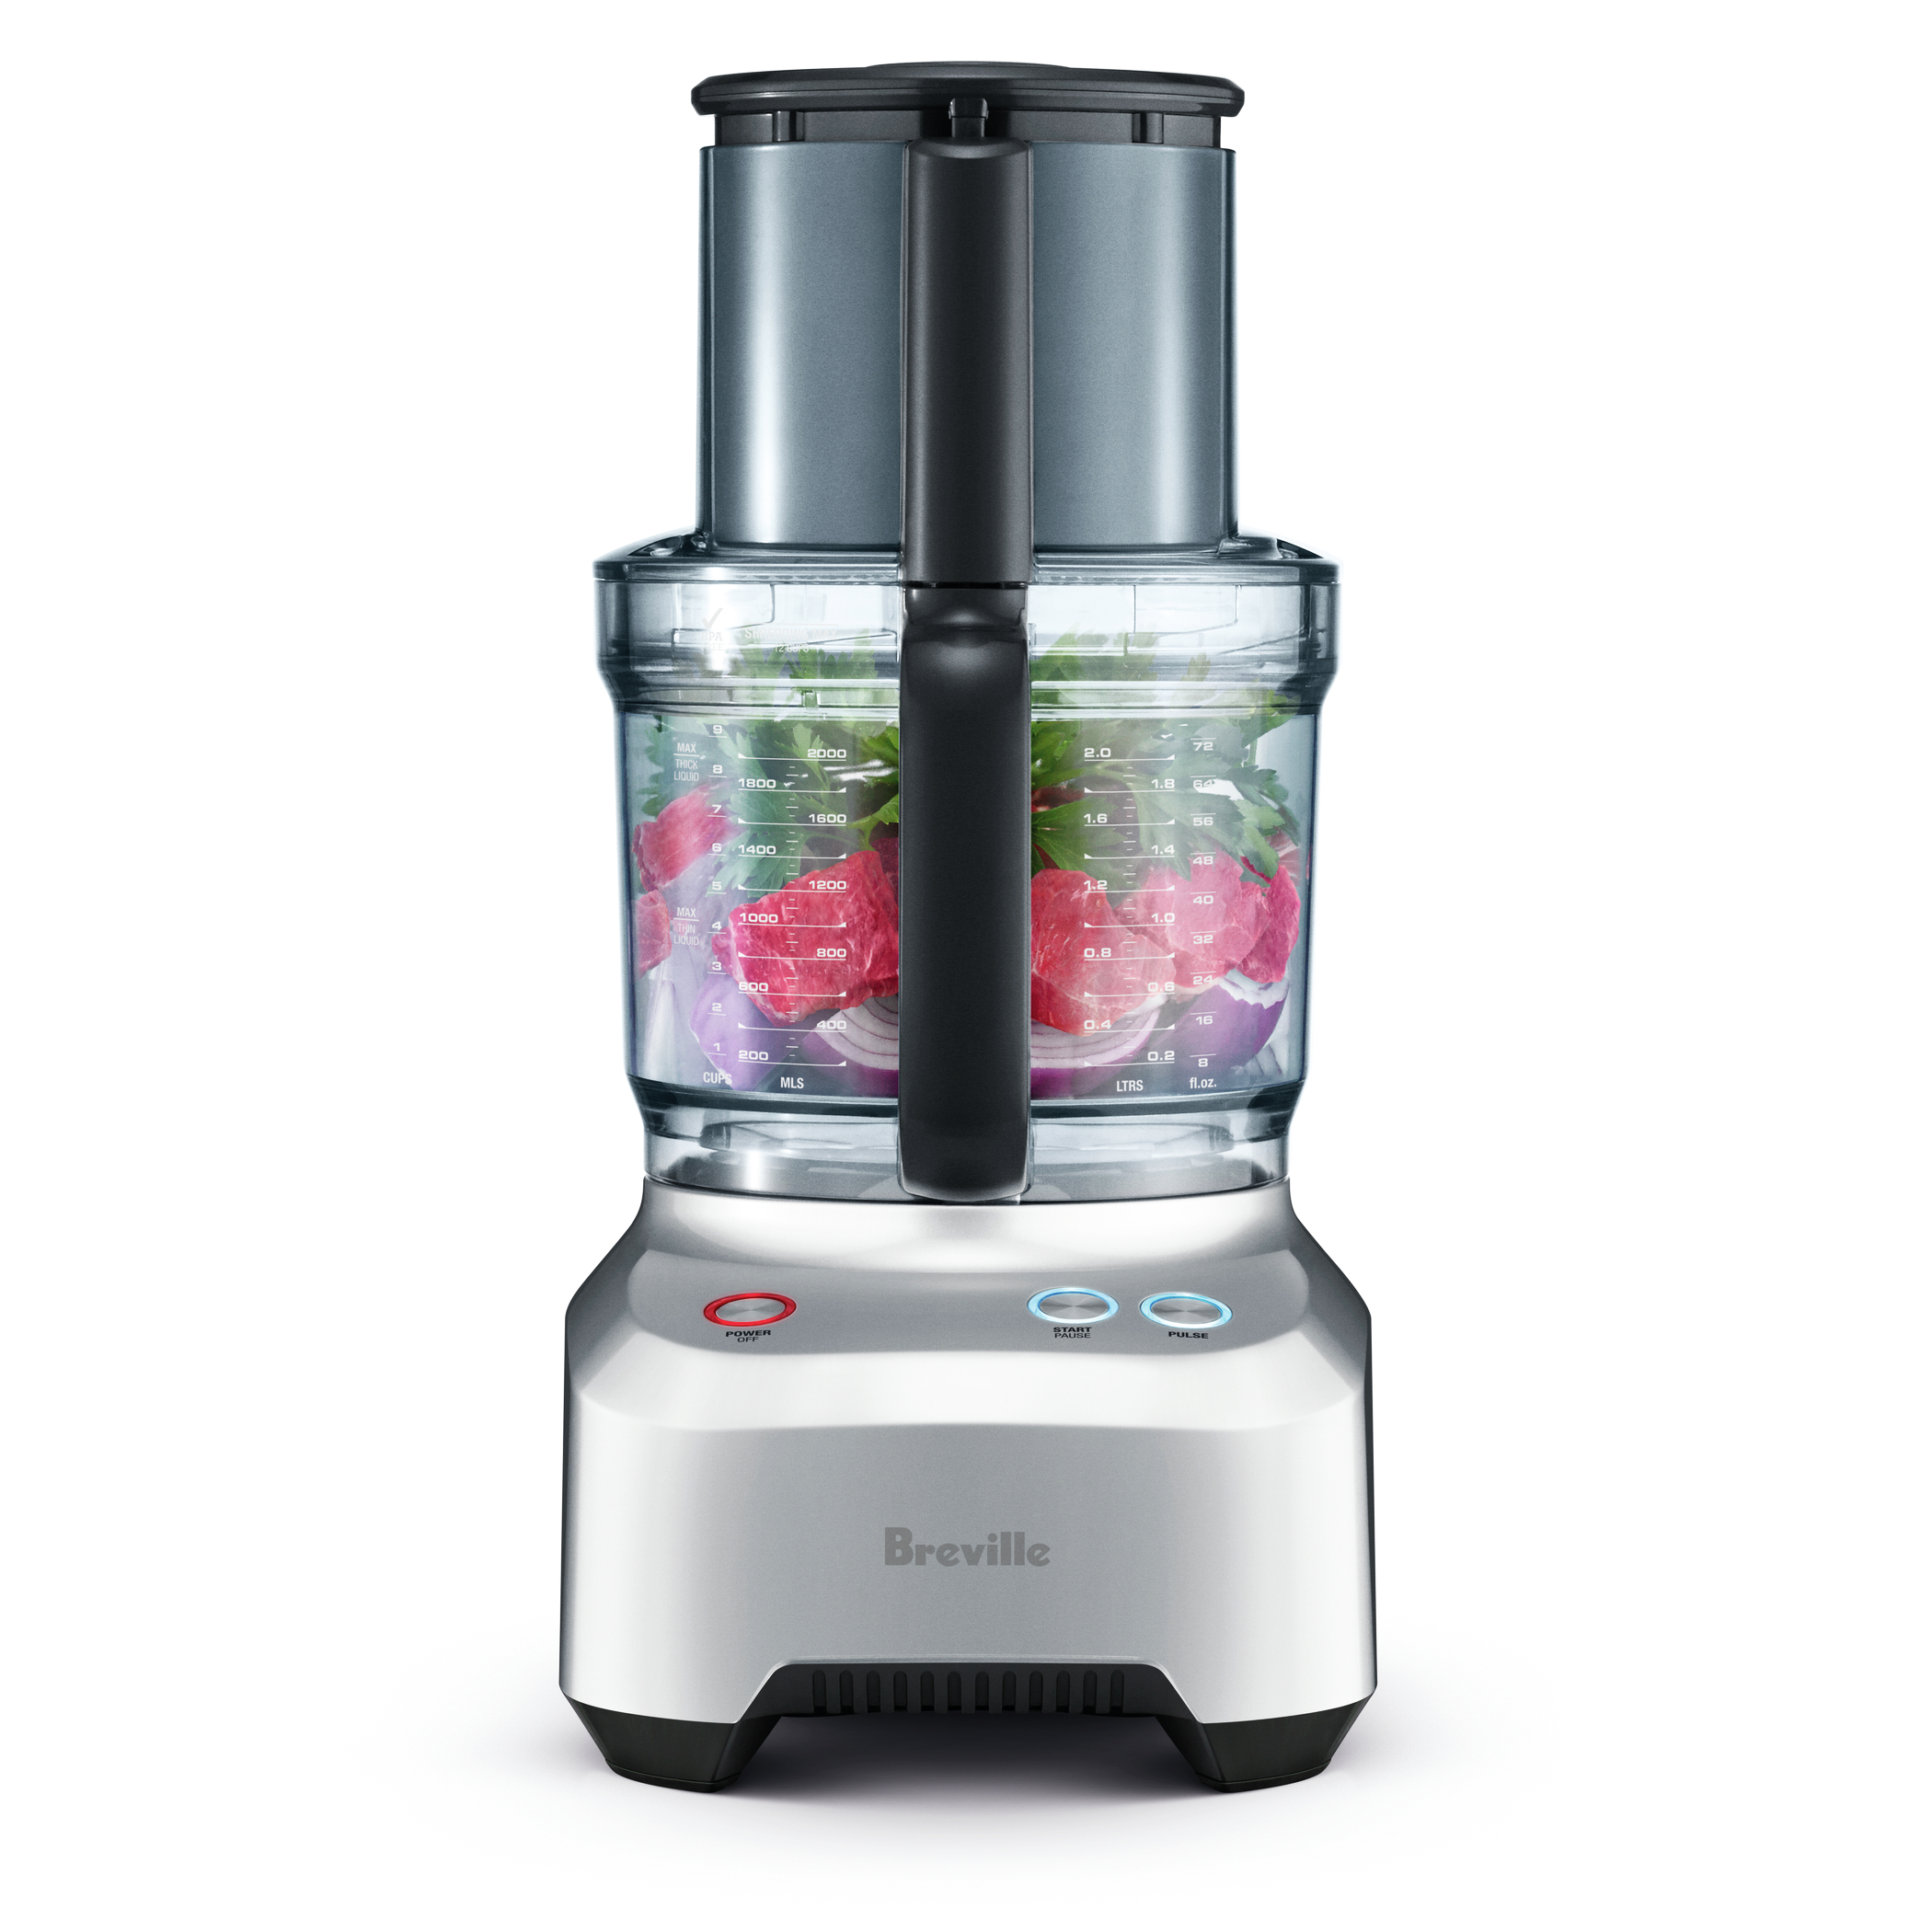 Breville Sous Chef 12 Cup Adjustable Food Processor